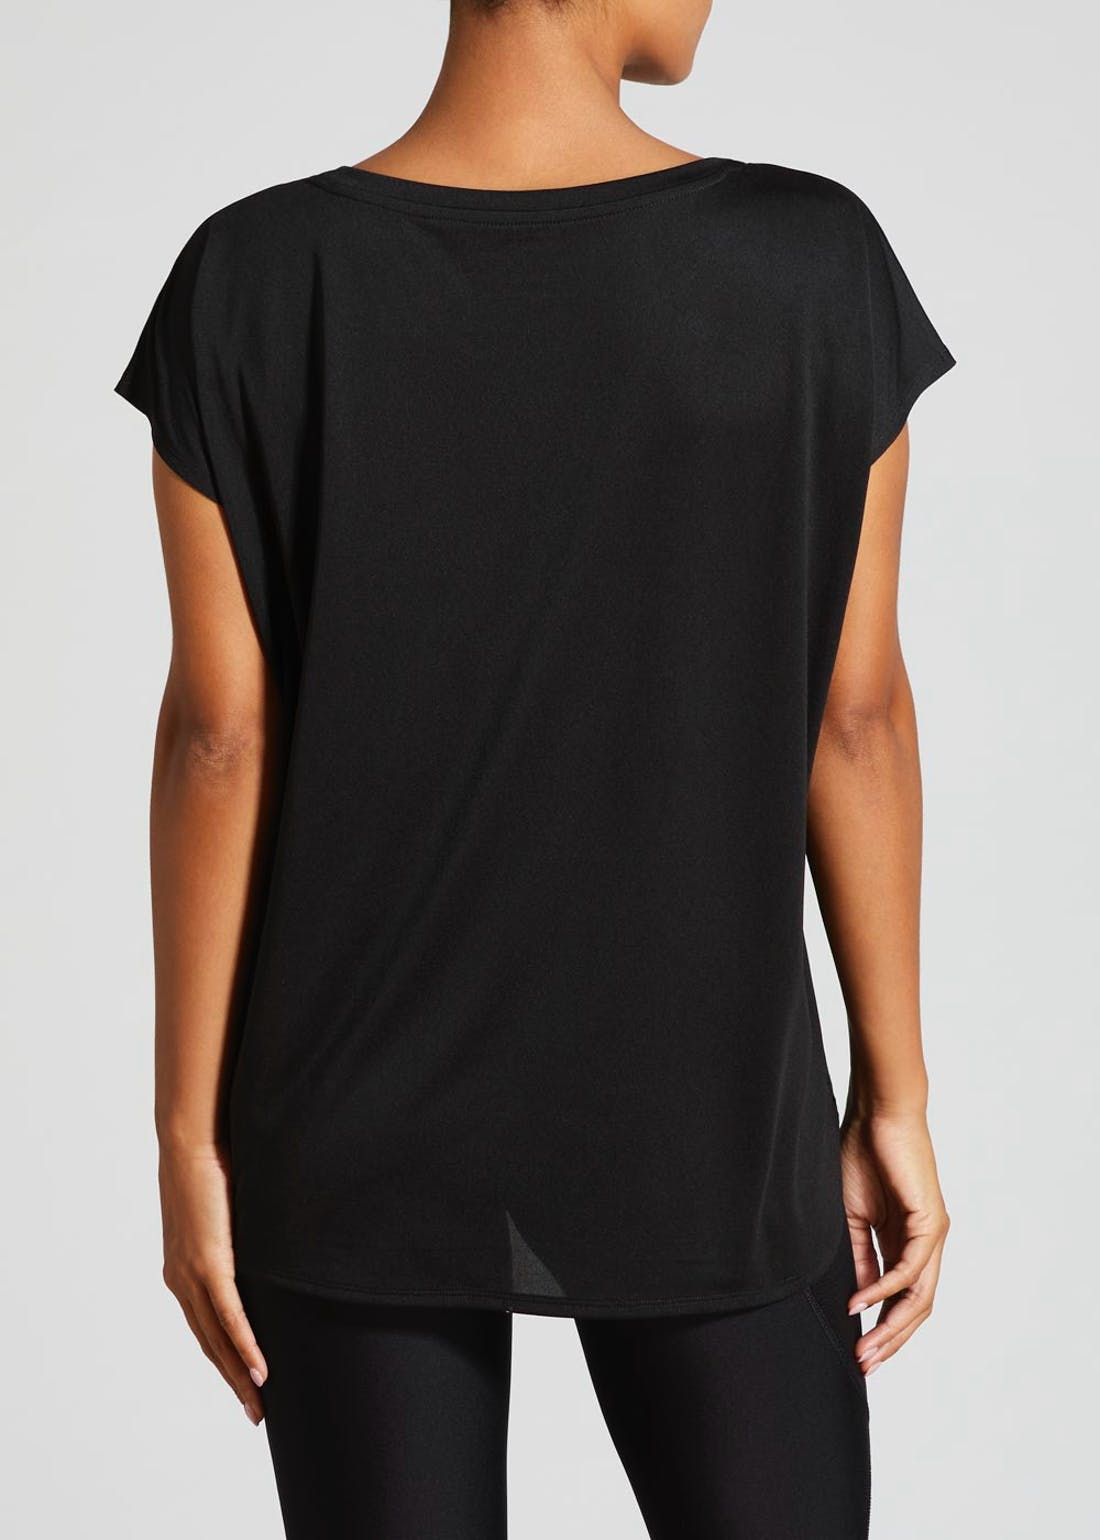 Souluxe Black Slouch Gym T-Shirt